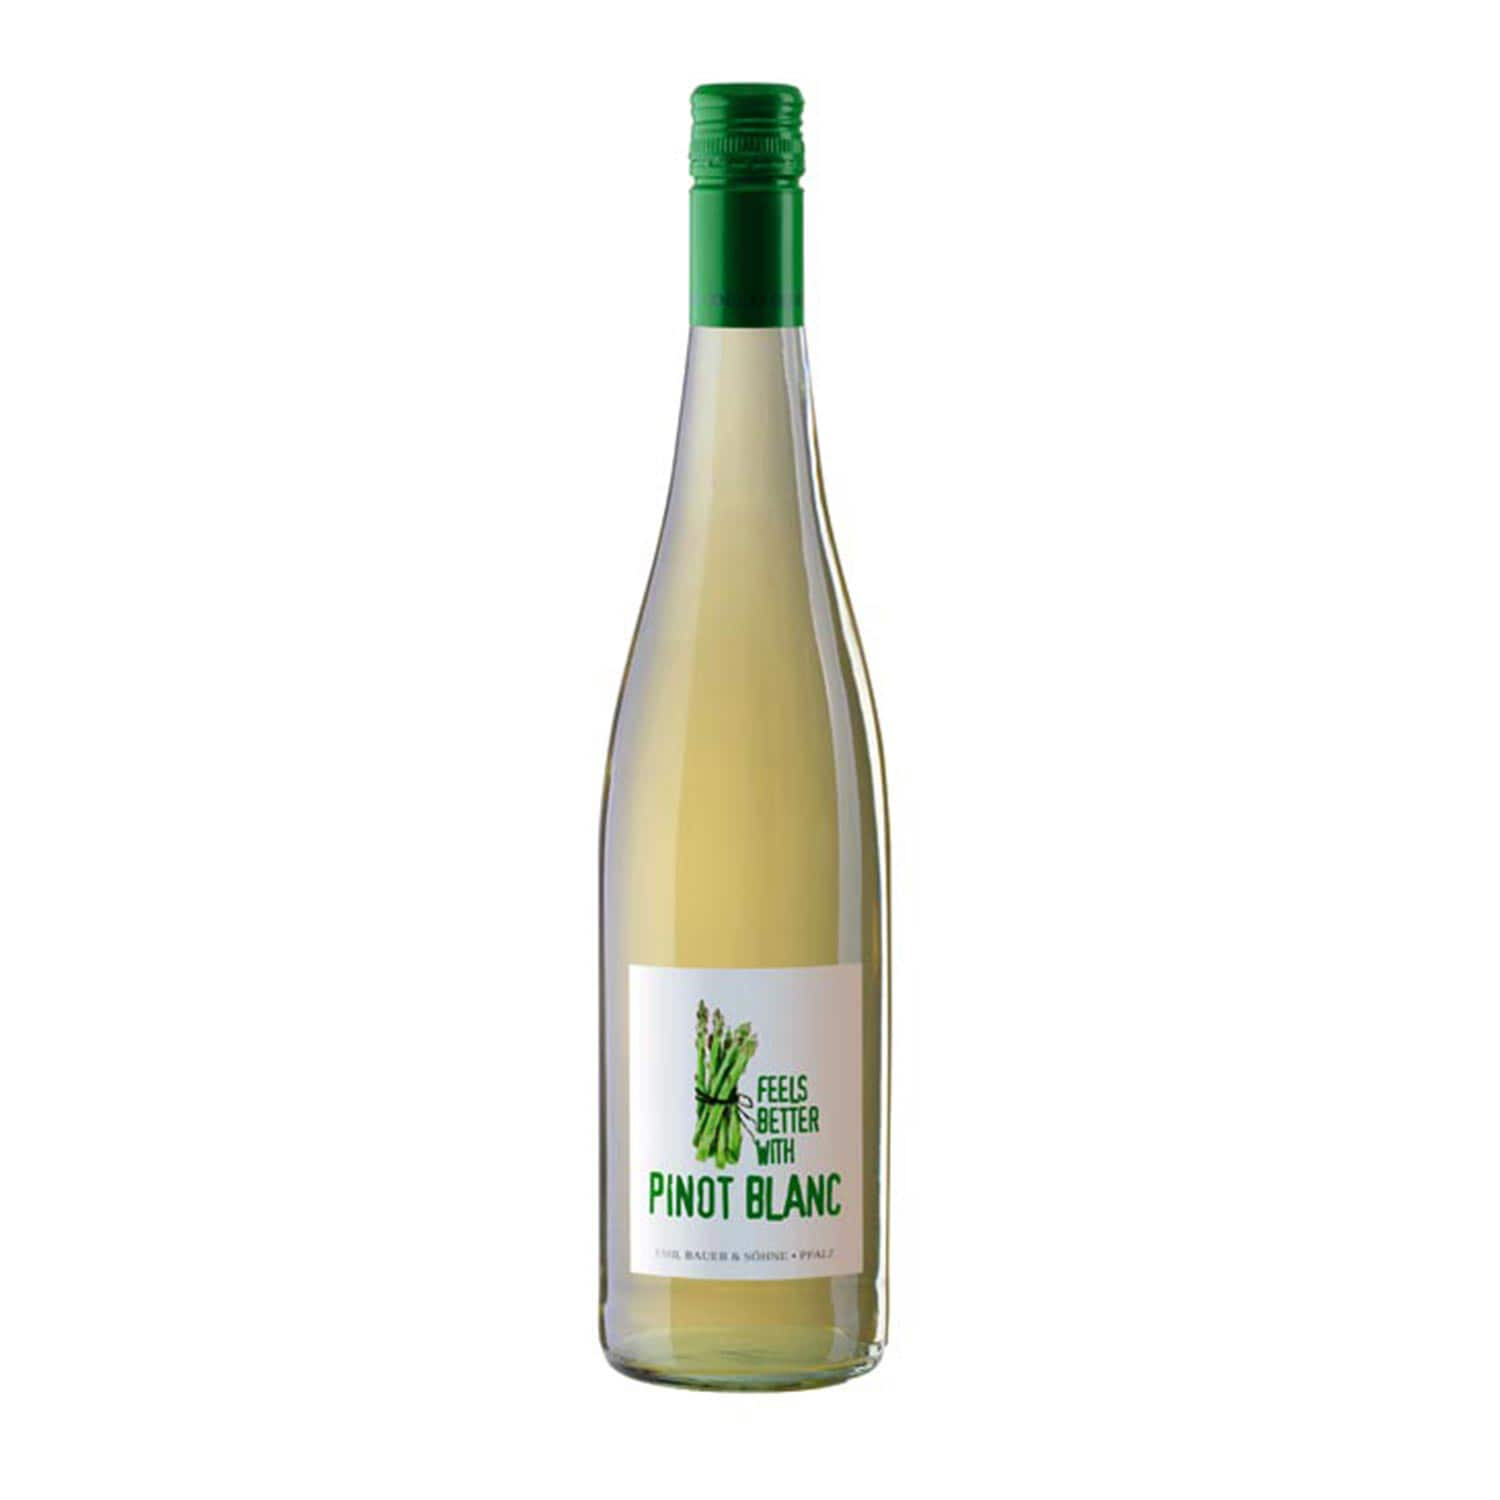 Emil Bauer & Söhne, FeelsBetter with Pinot Blanc, Pinot Blanc 2016, Weißwein, 0.75l